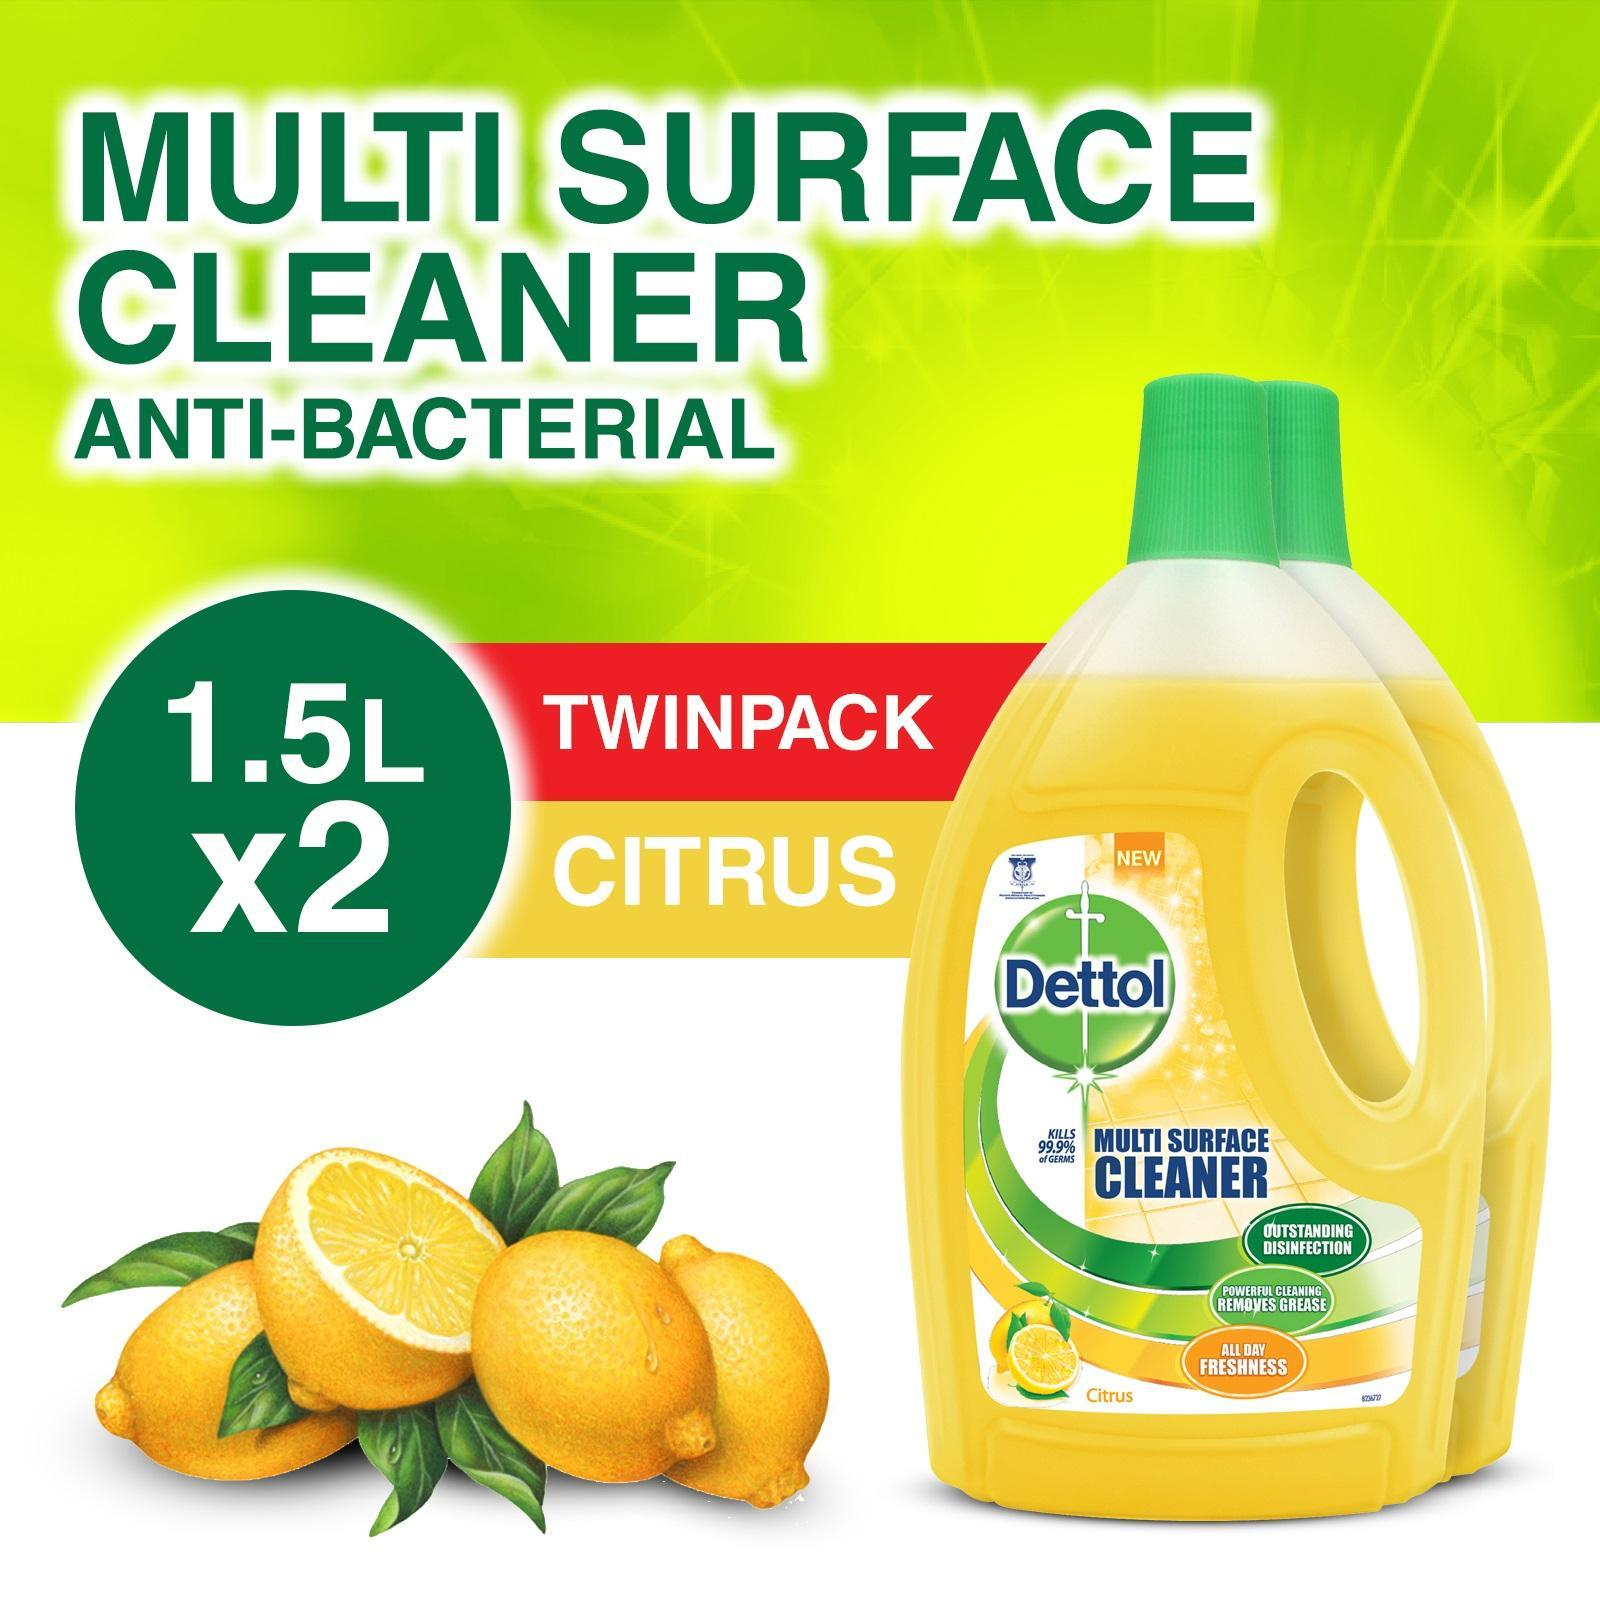 Dettol 4-in-1 Disinfectant Multi Surface Cleaner Citrus 2x 1.5L